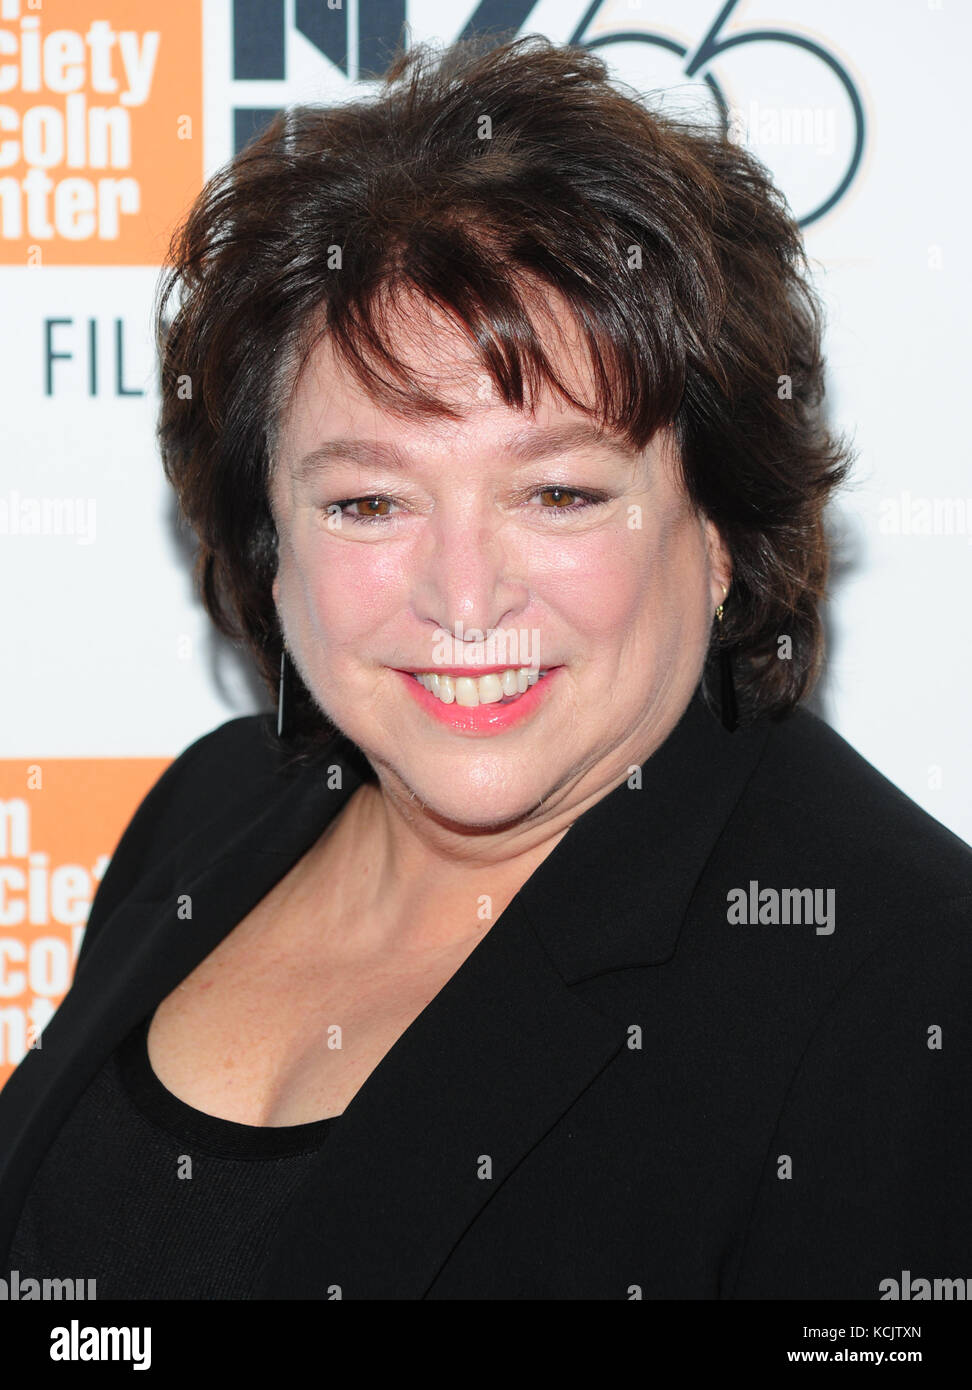 New York, USA. 05th Oct, 2017. New York, NY, USA. 5th Oct, 2017. Susan Lacy attends 55th New York Film Festival - Stock Image